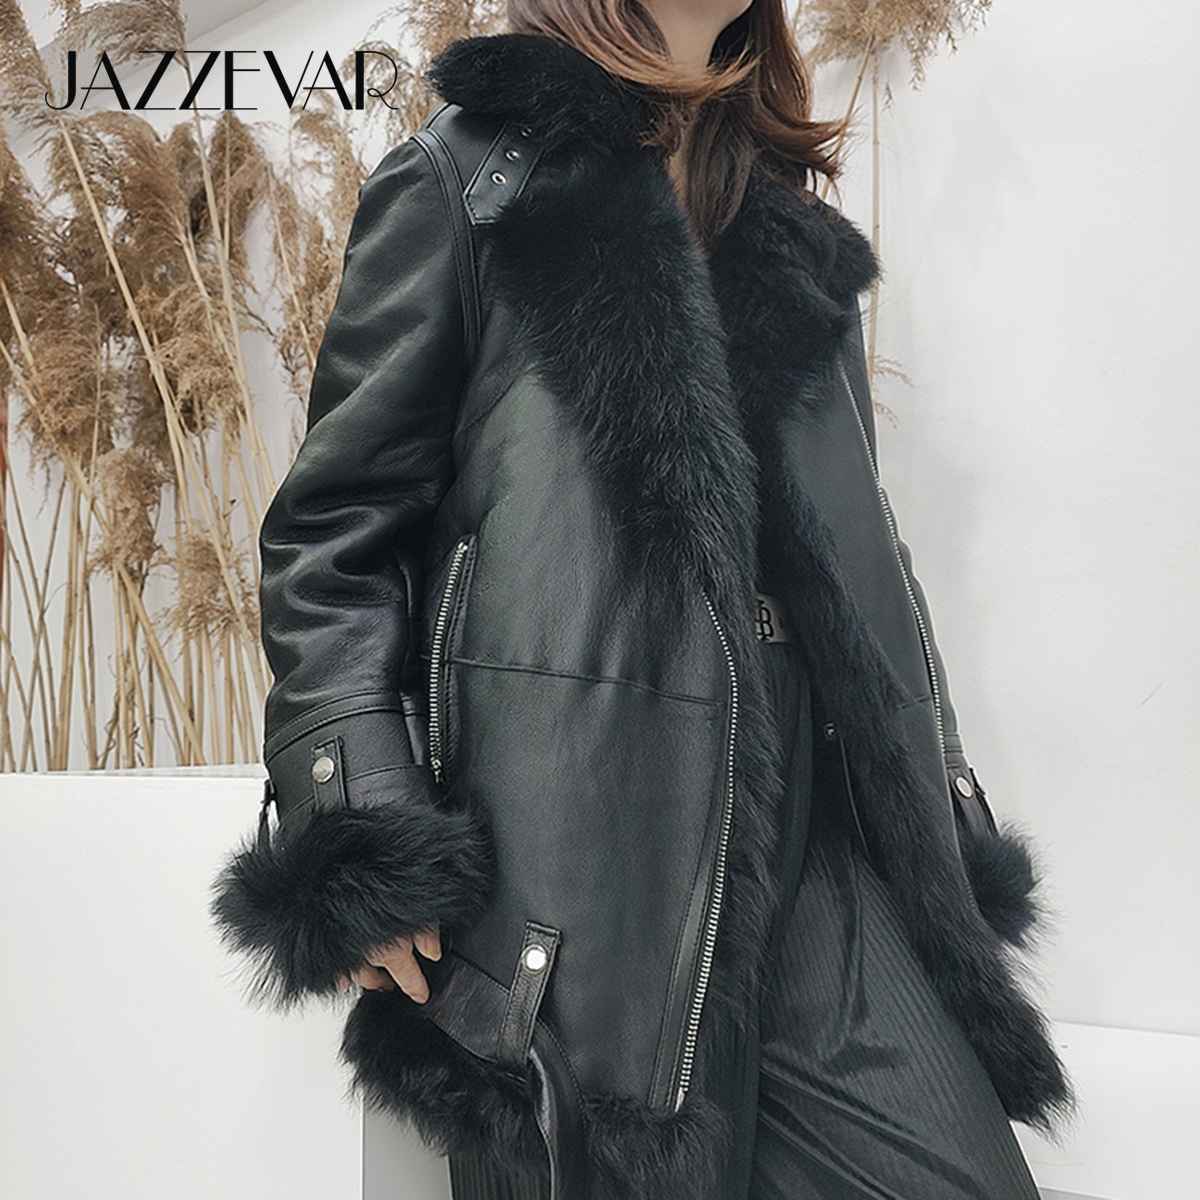 JAZZEVAR sheepskin winter Jacket high fashion street Women Real double faced fur Outerwear female Tuscany leather with fur coat|Real Fur| - AliExpress